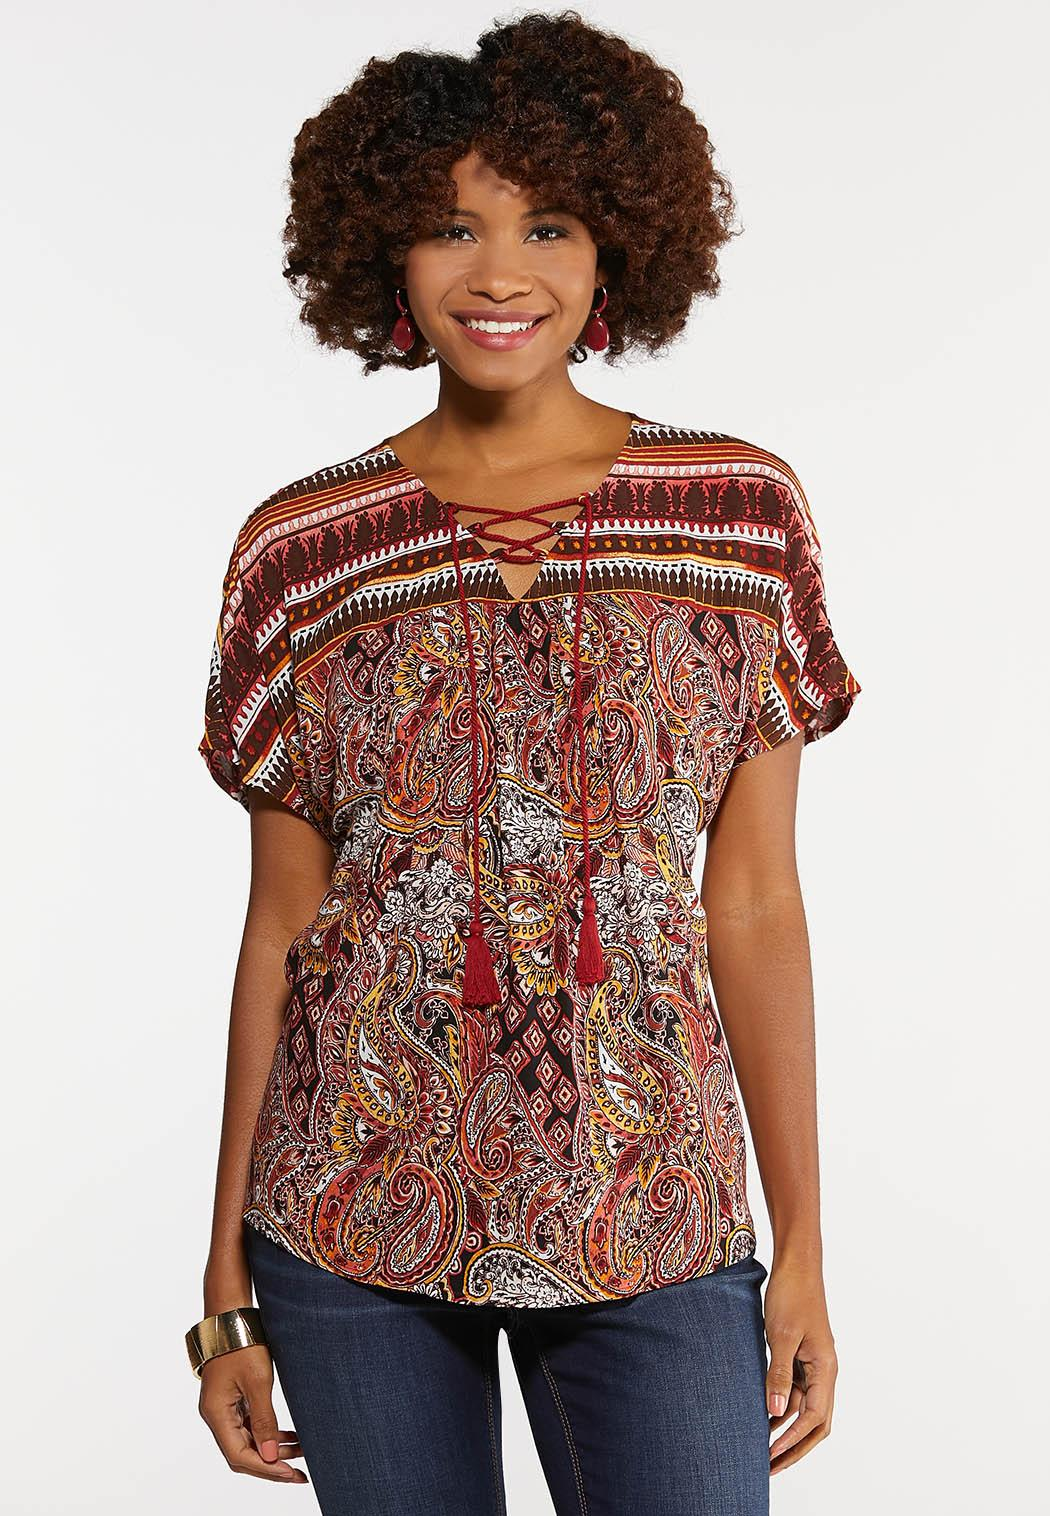 Lace Up Paisley Poet Top